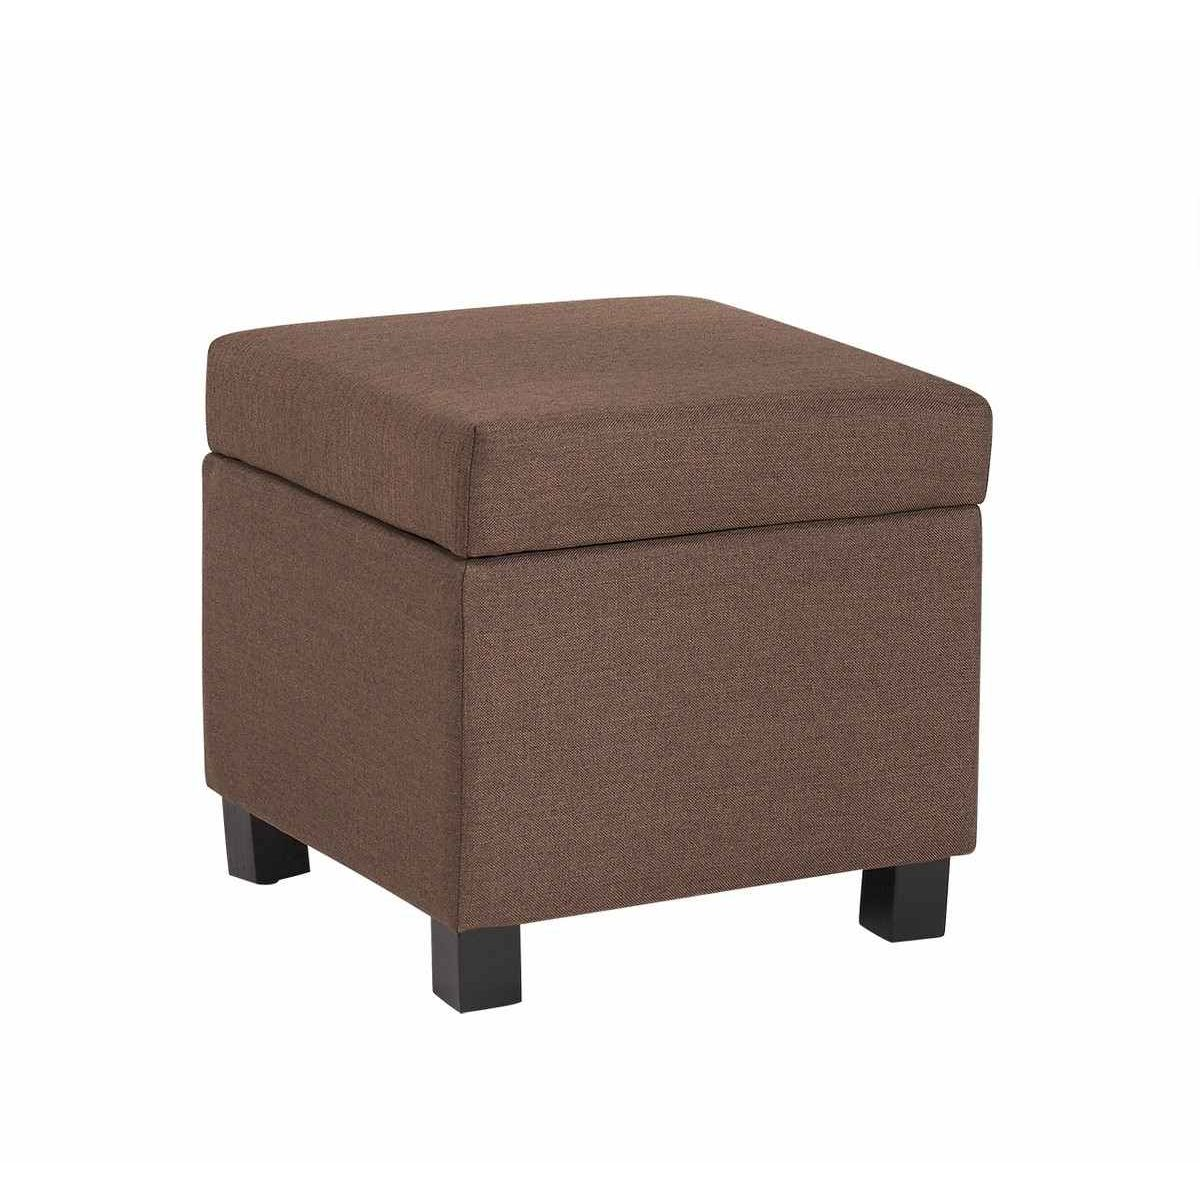 deco in paris pouf coffre de rangement tissu marron pola. Black Bedroom Furniture Sets. Home Design Ideas